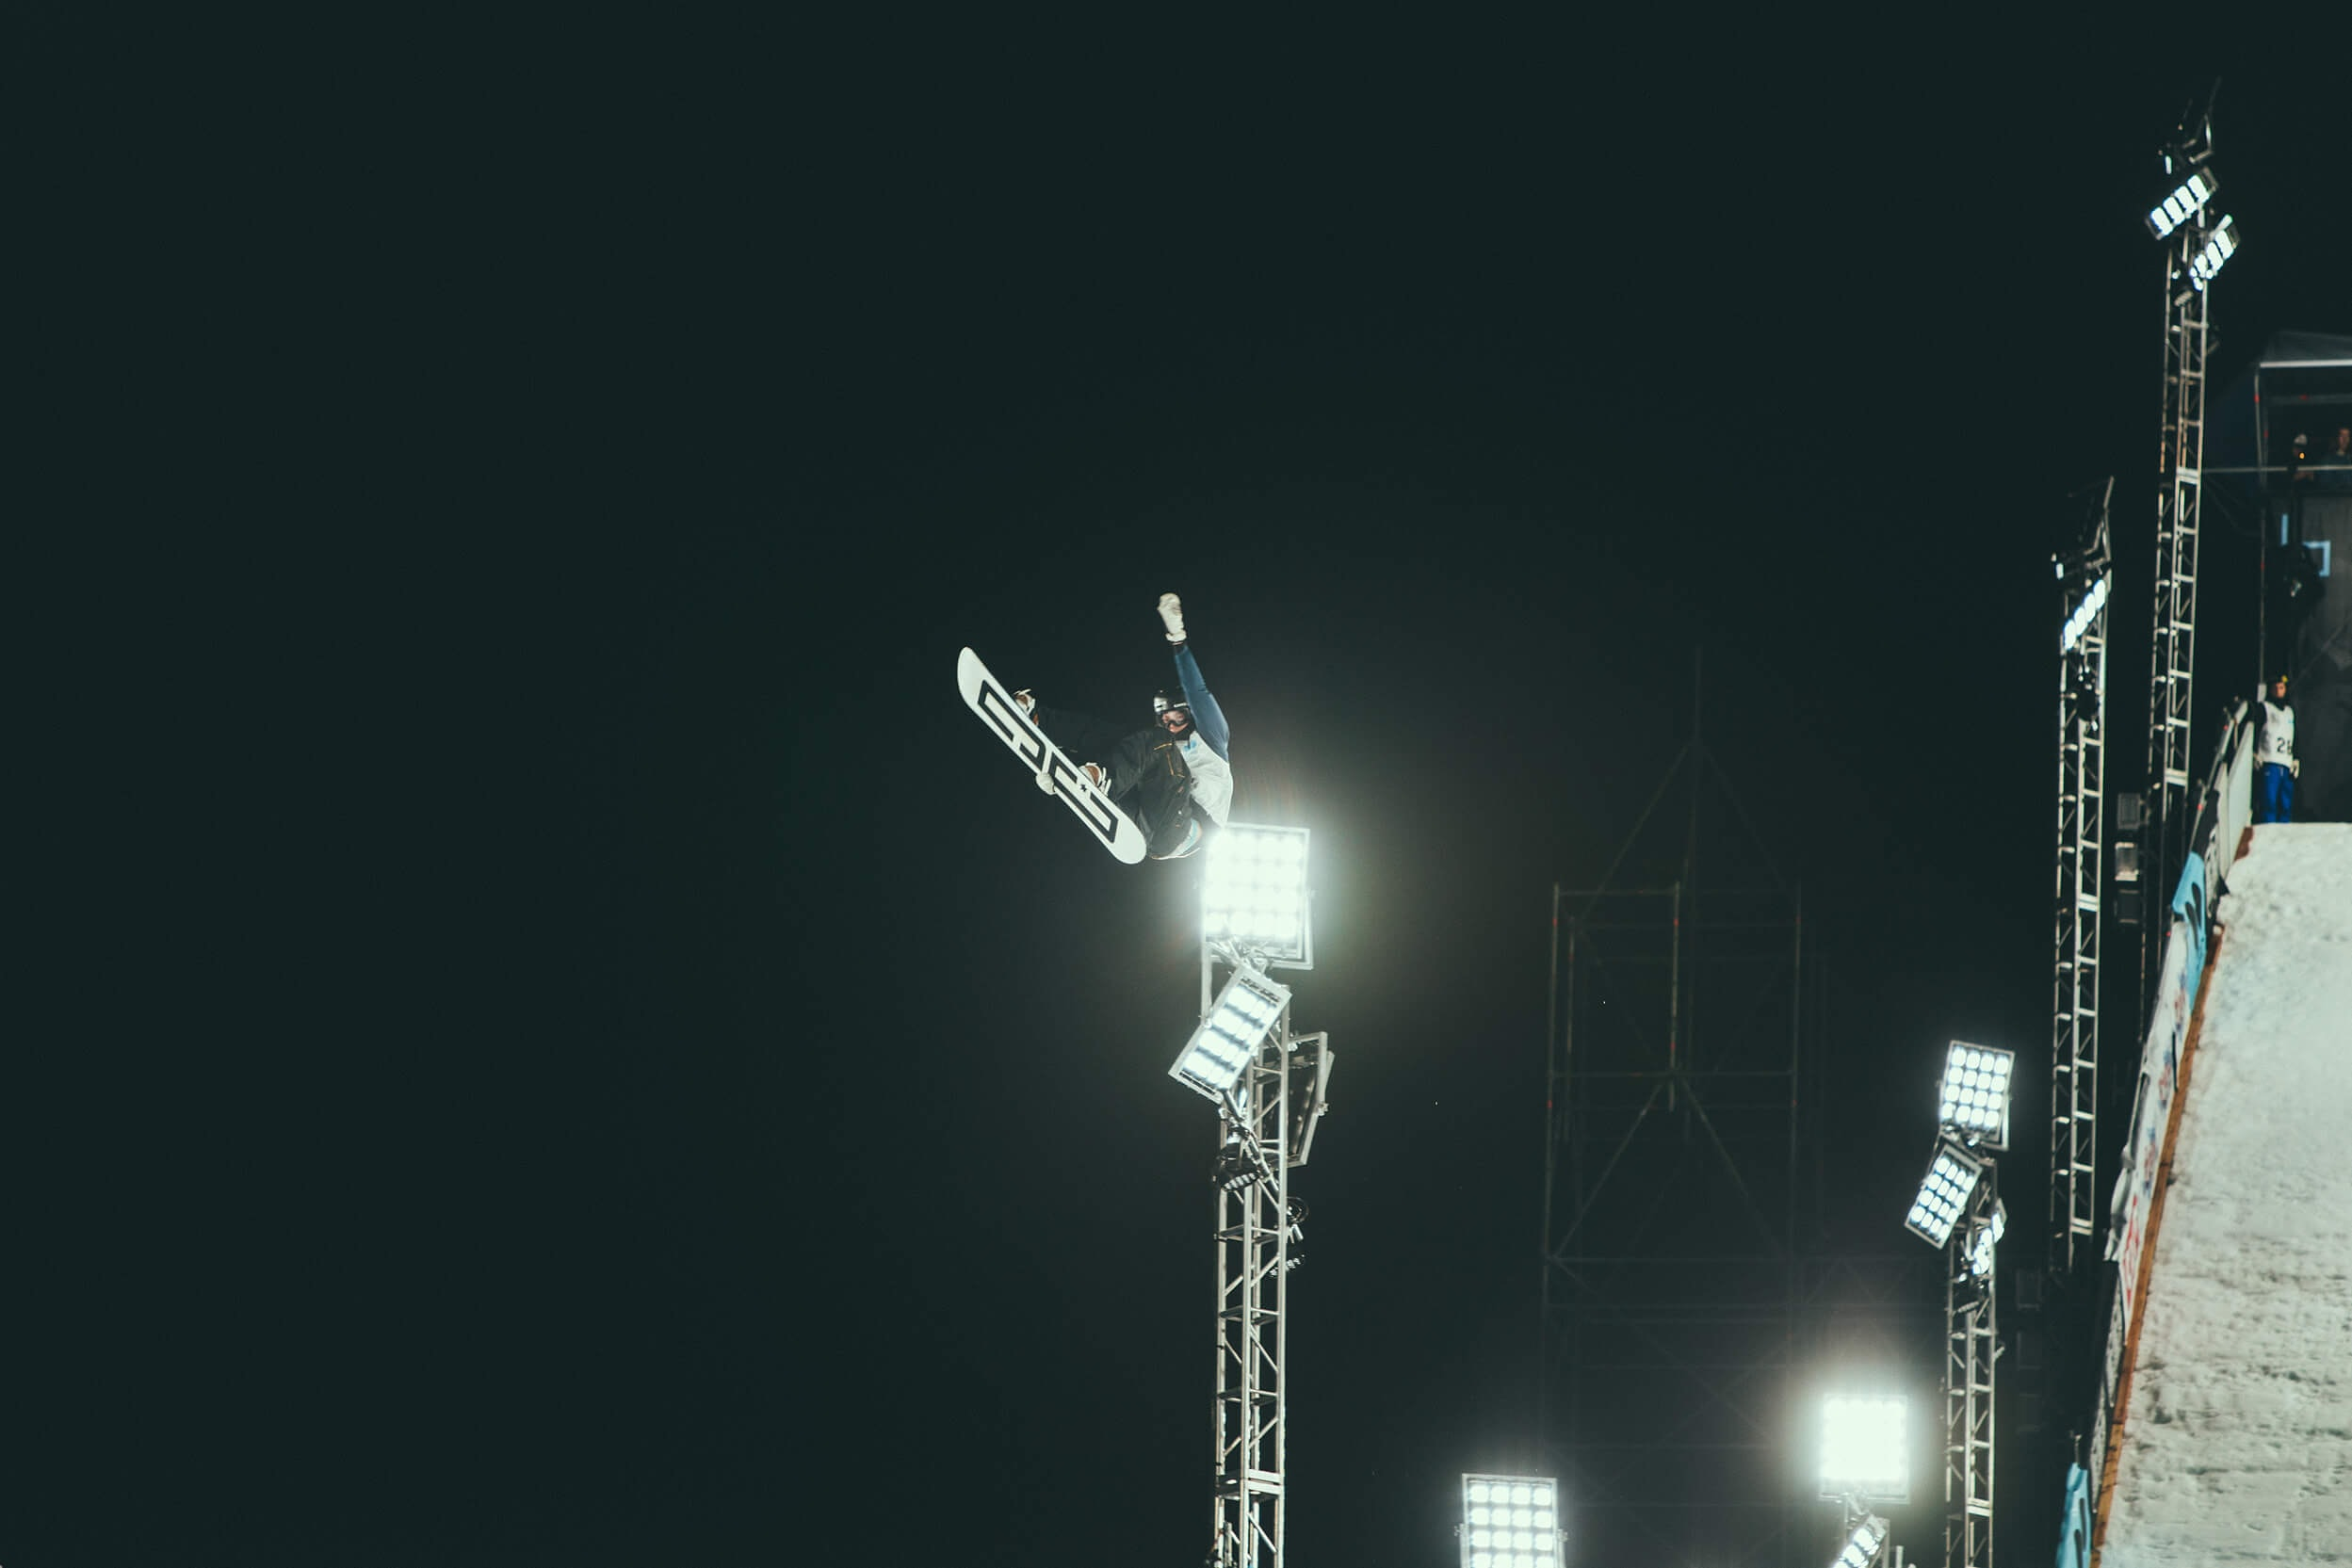 person snowboarding making stunts during nighttime